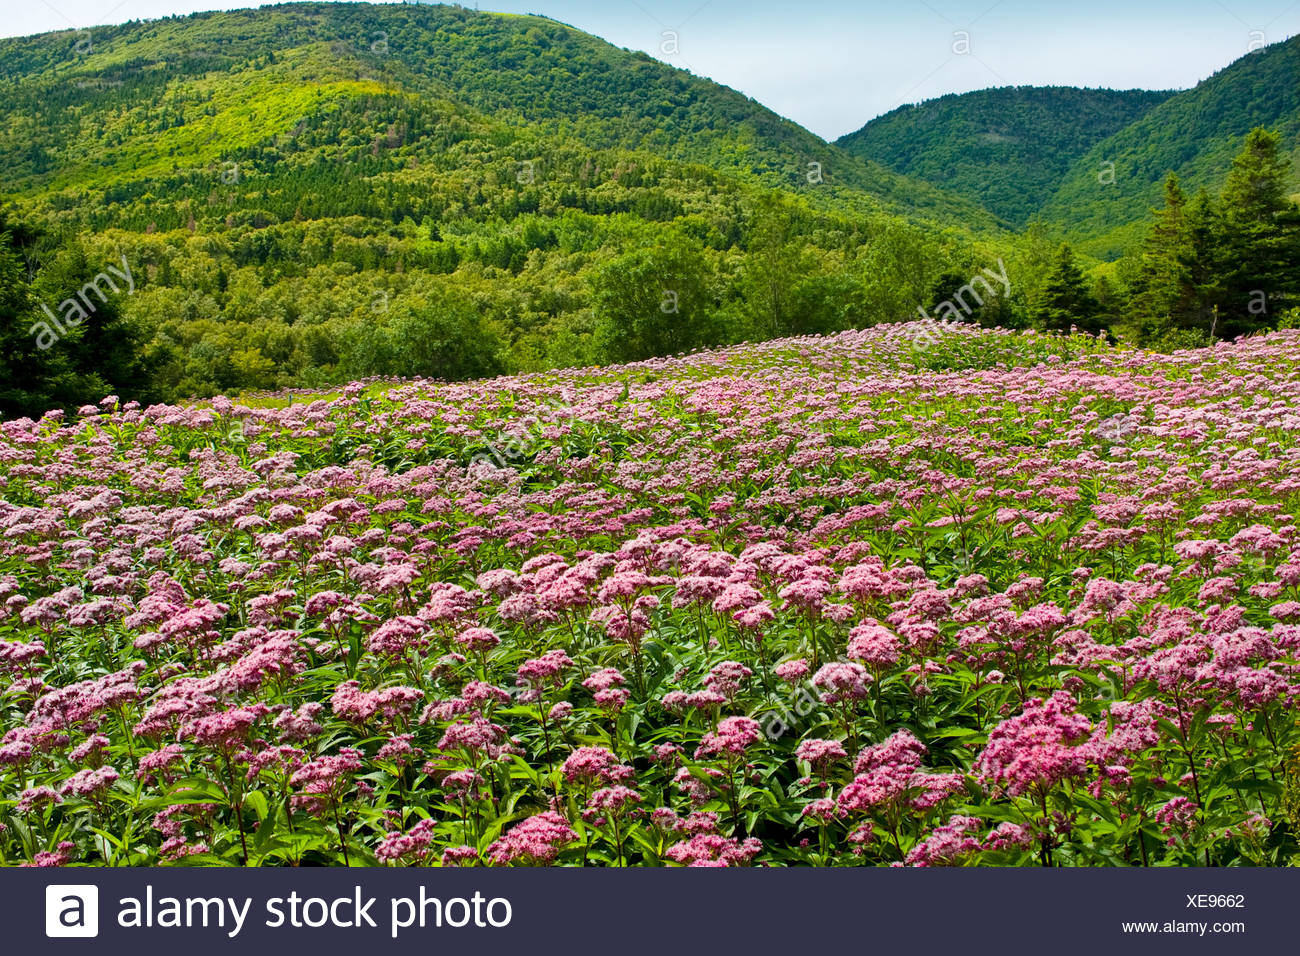 Field of Spotted Joe-pye Weed, (Eupatorium maculatum) at Cap Rouge in Highlands National Park, Cape Breton, Nova Scotia, Canada. - Stock Image